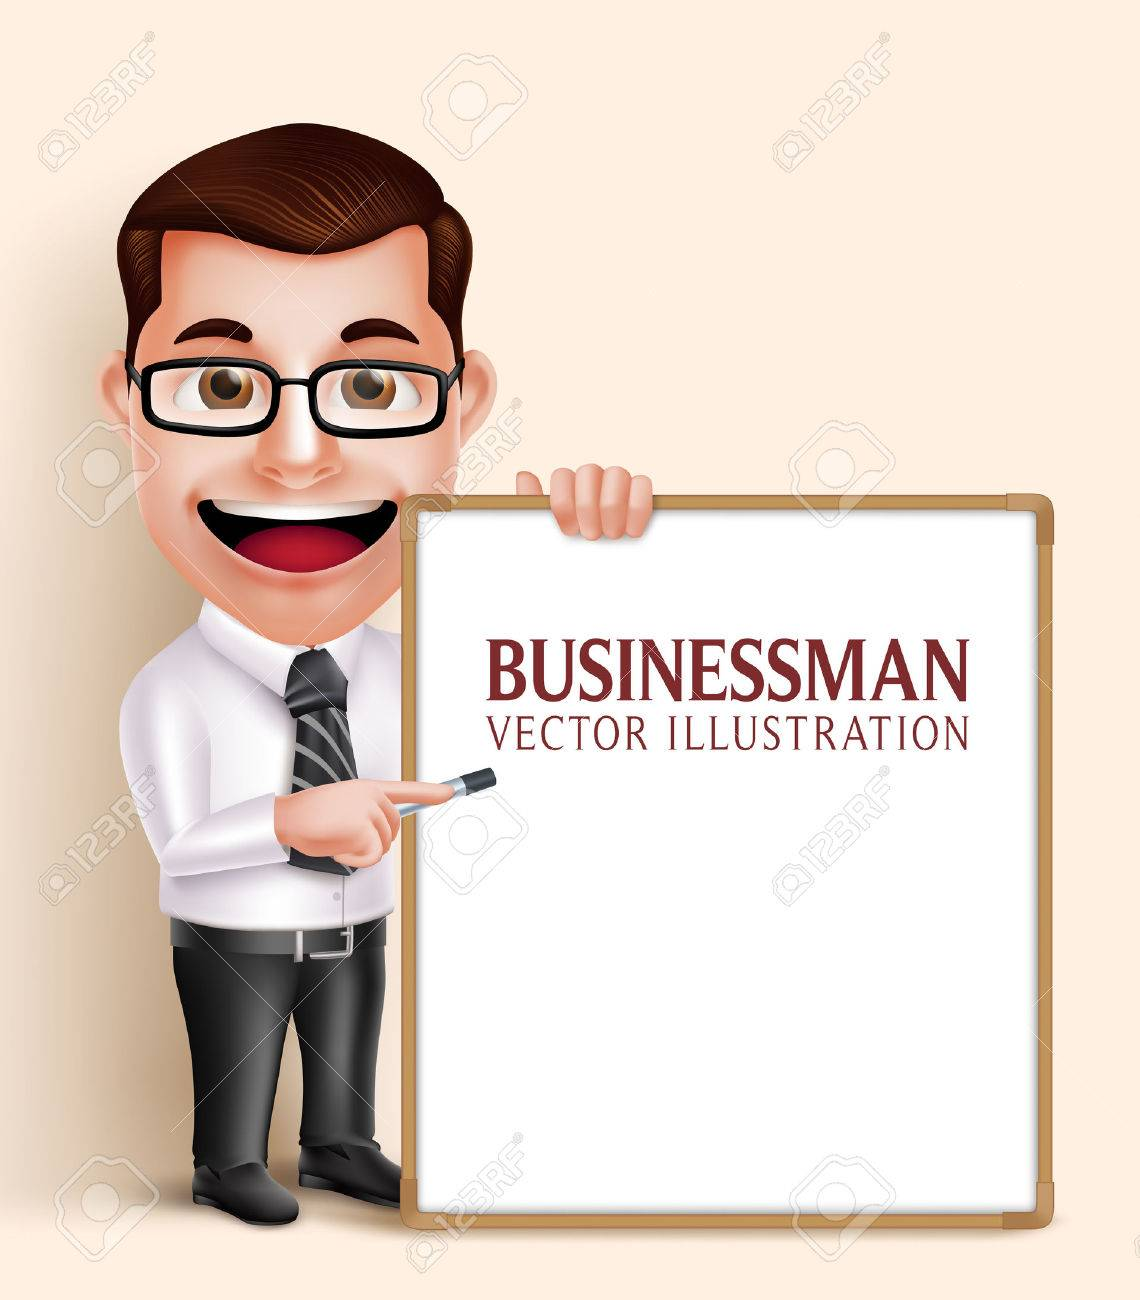 3D Realistic Professional Business Man Vector Character Holding Blank White Board for Presentation or Space for Text. Vector Illustration - 49632353